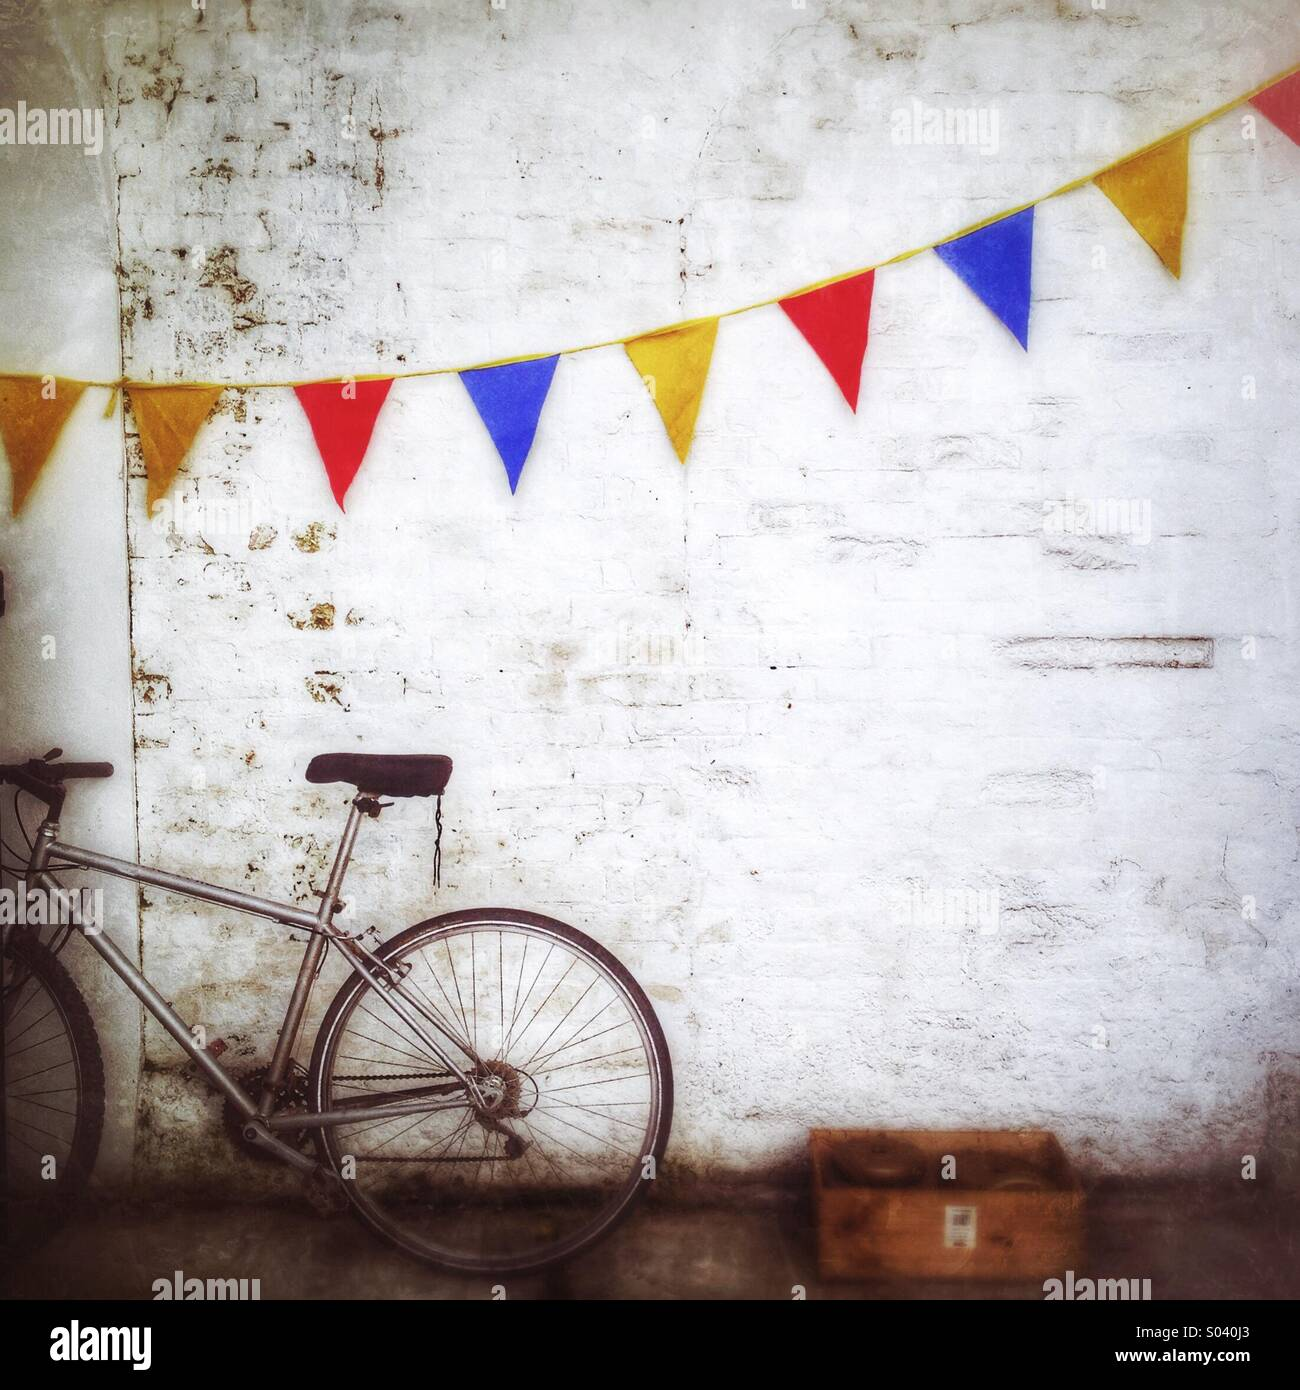 The Bike and the Bunting - Stock Image